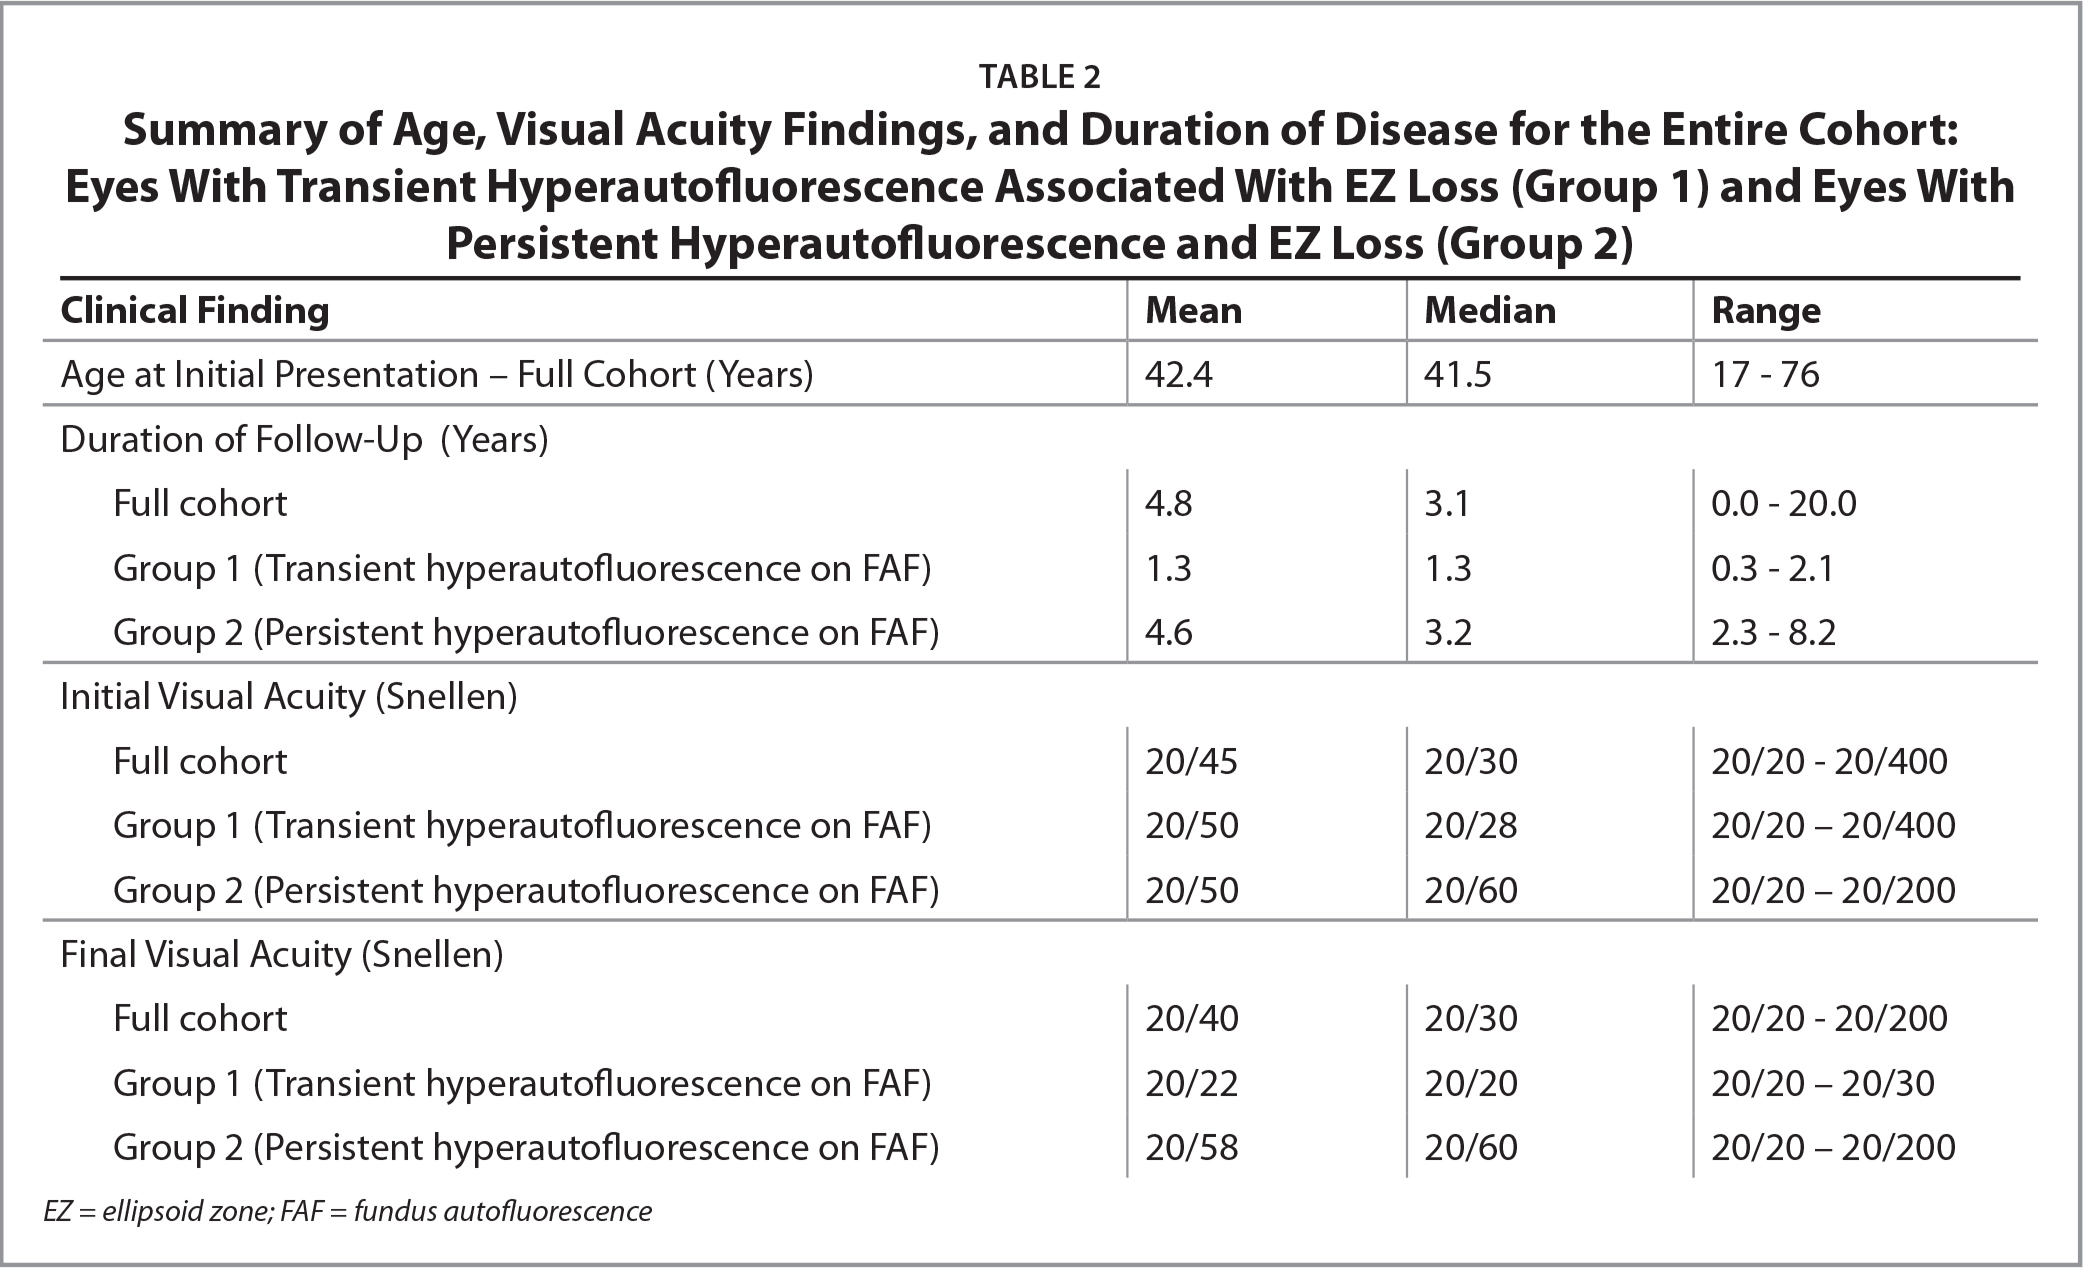 Summary of Age, Visual Acuity Findings, and Duration of Disease for the Entire Cohort:Eyes With Transient Hyperautofluorescence Associated With EZ Loss (Group 1) and Eyes With Persistent Hyperautofluorescence and EZ Loss (Group 2)